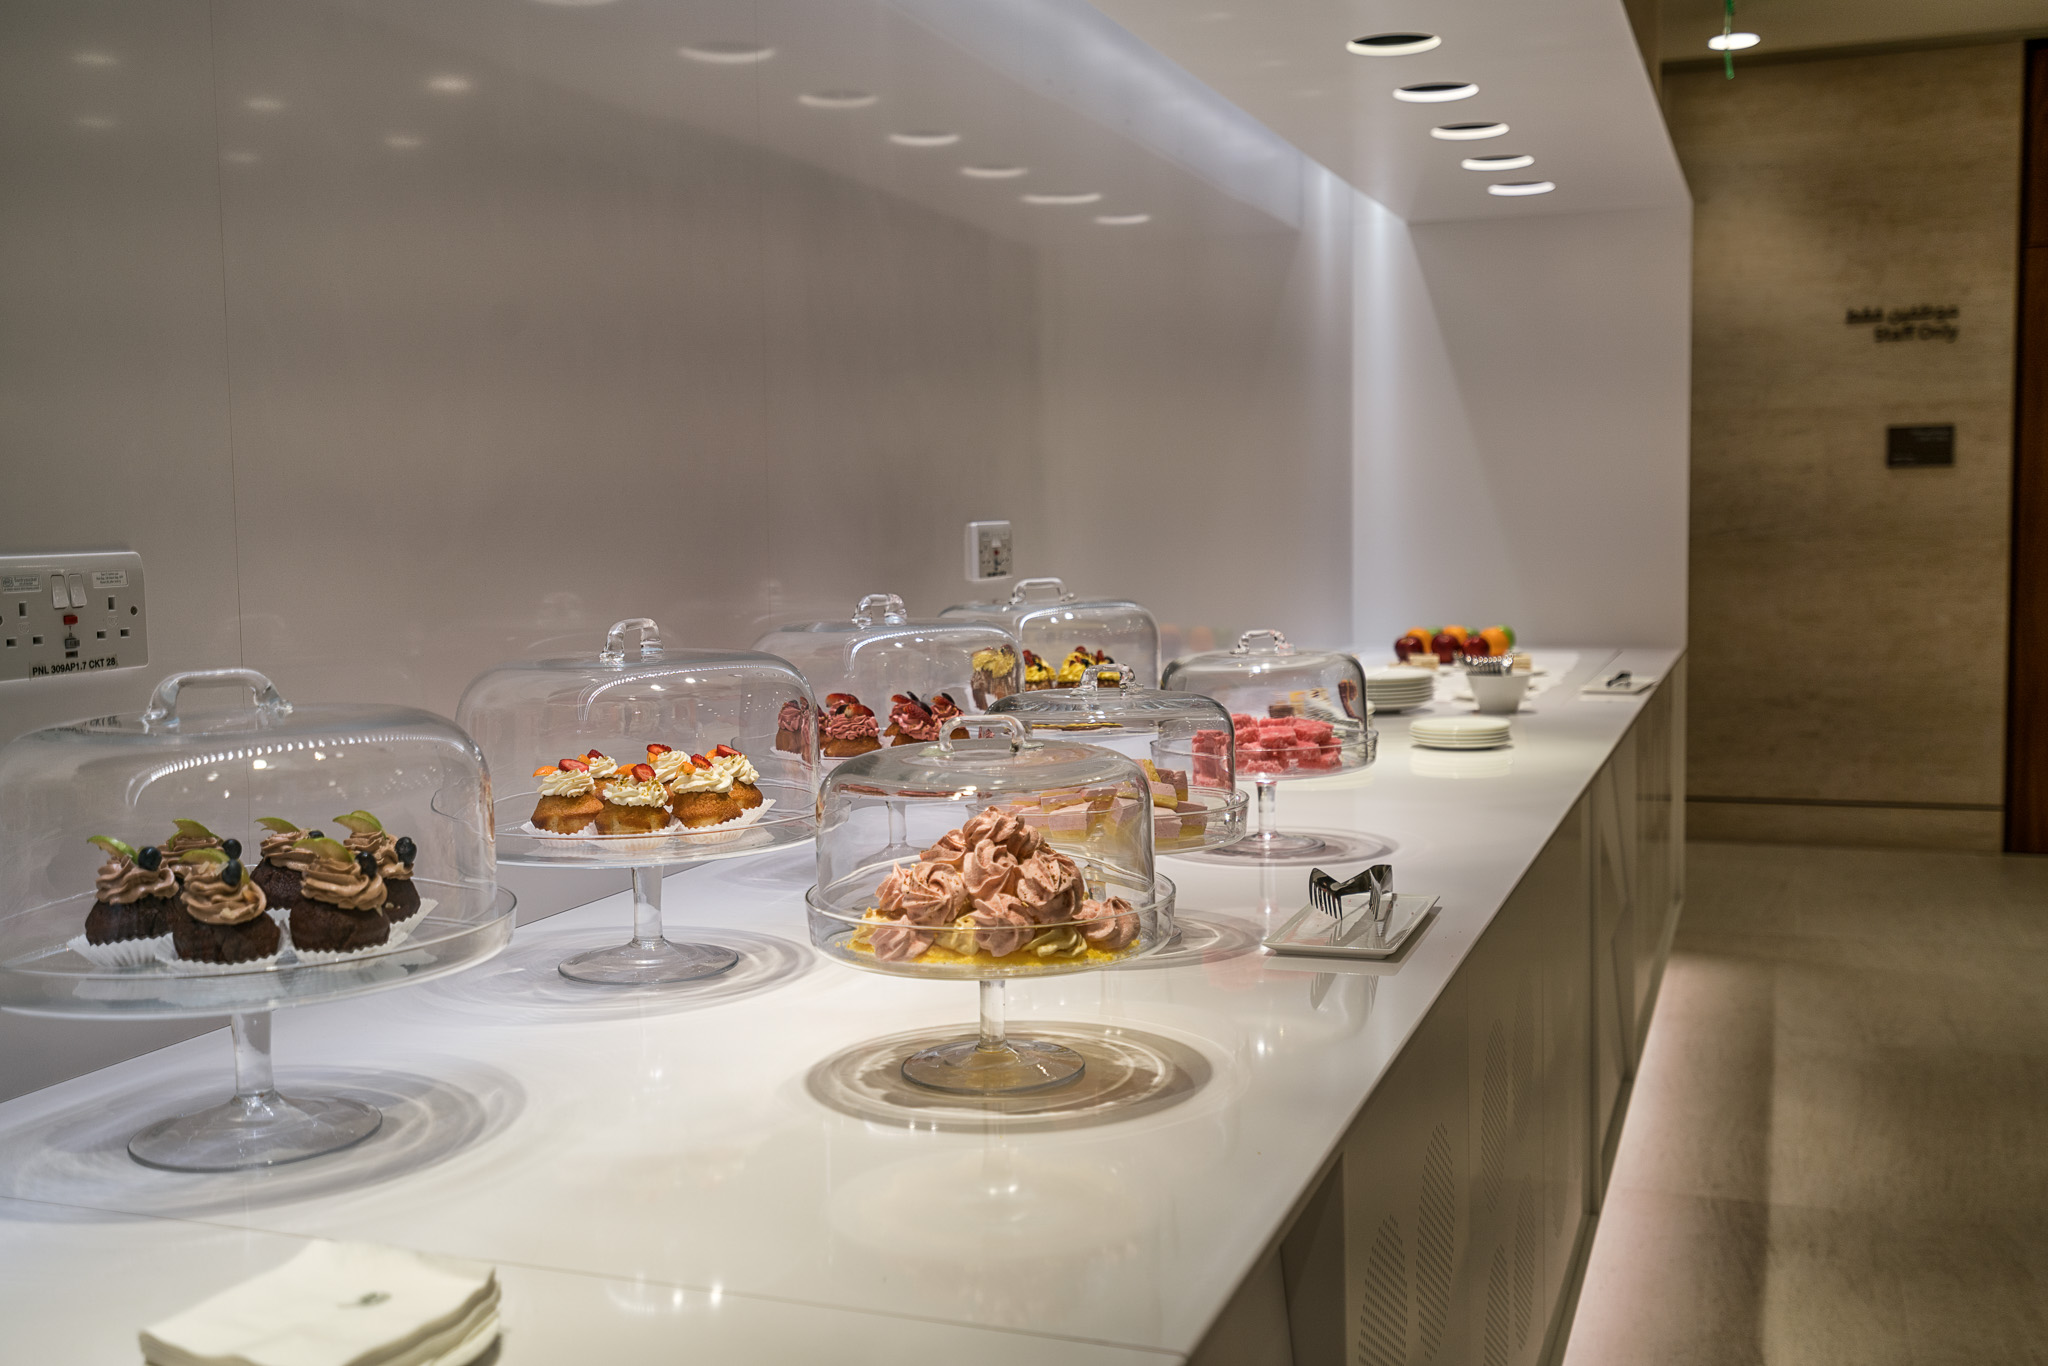 Qatar Airways Al Safwa First Class Lounge in Detail - sweet room. SkyLux - Discounted Business and First Class Flights